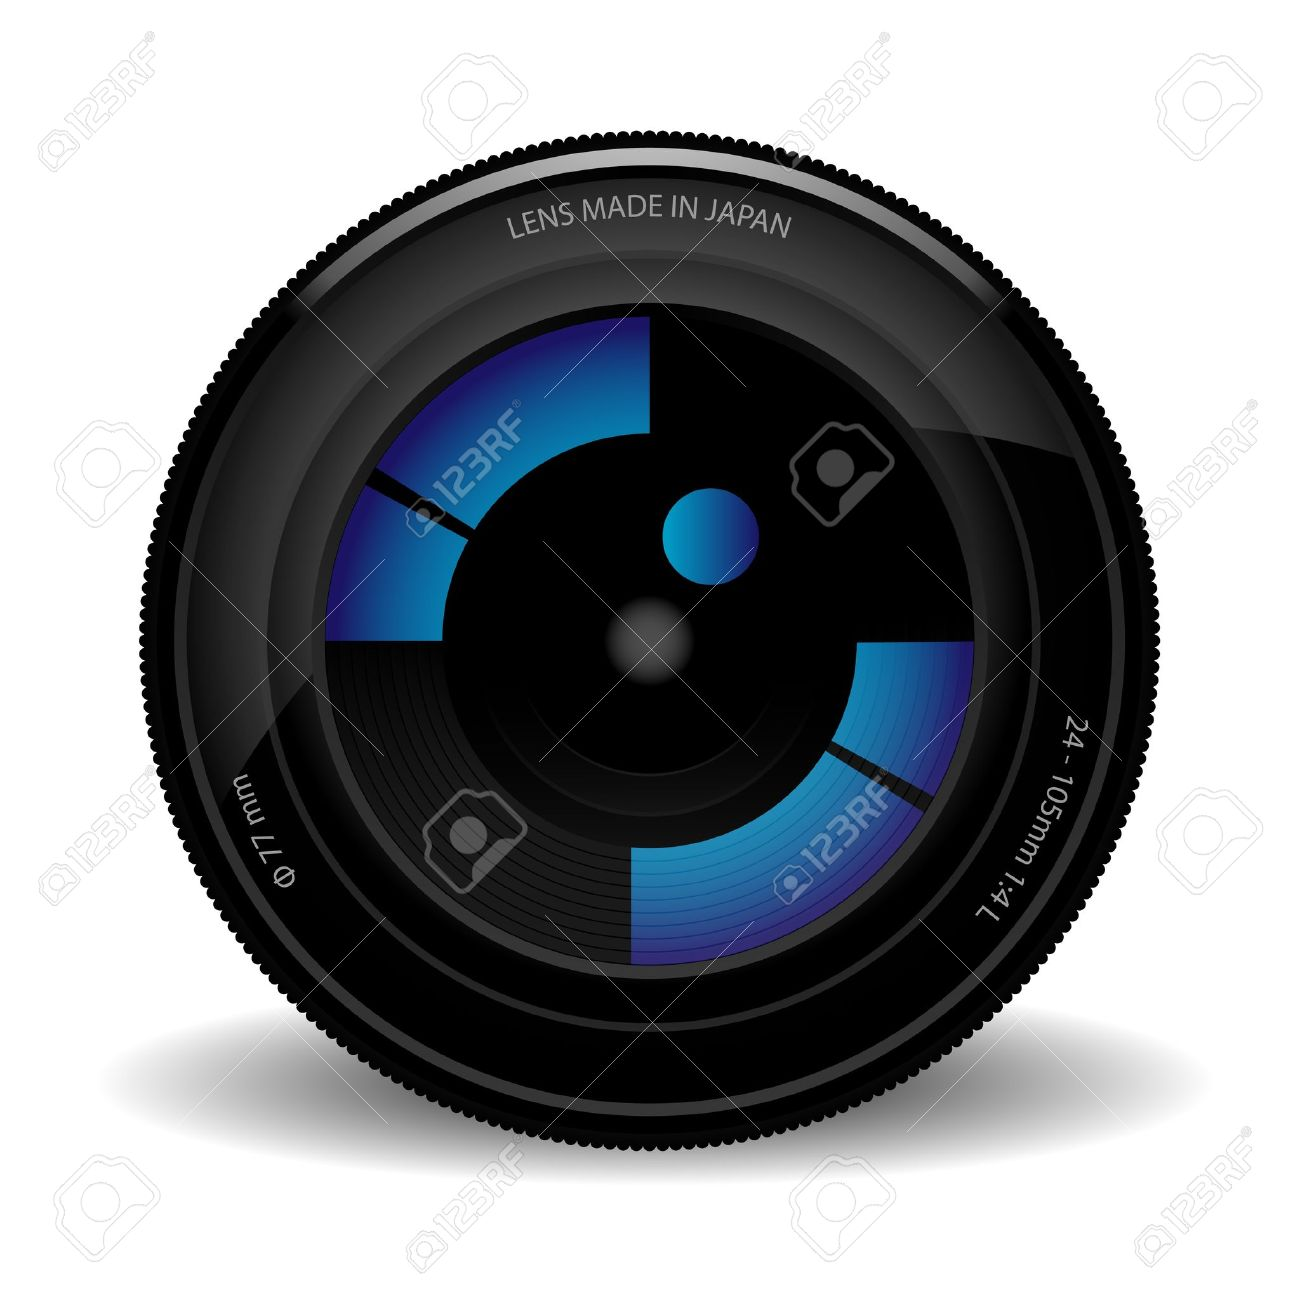 871 Telephoto Lens Stock Vector Illustration And Royalty Free.